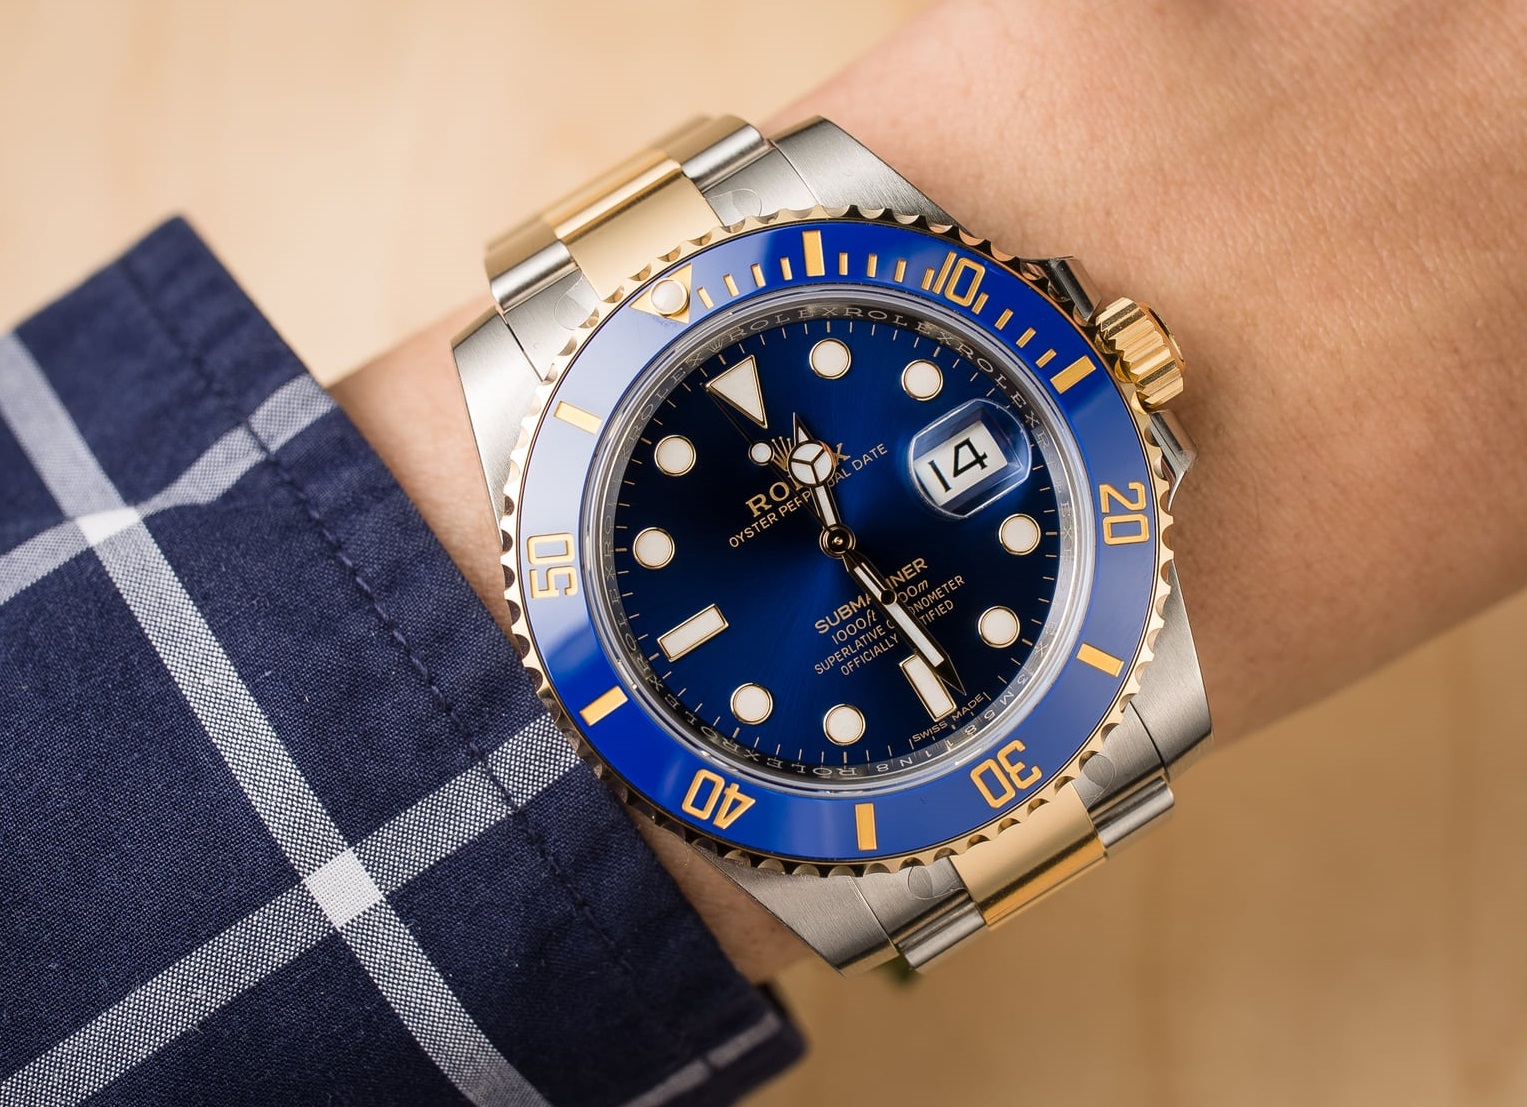 Rolex Submariner 116613LB fake